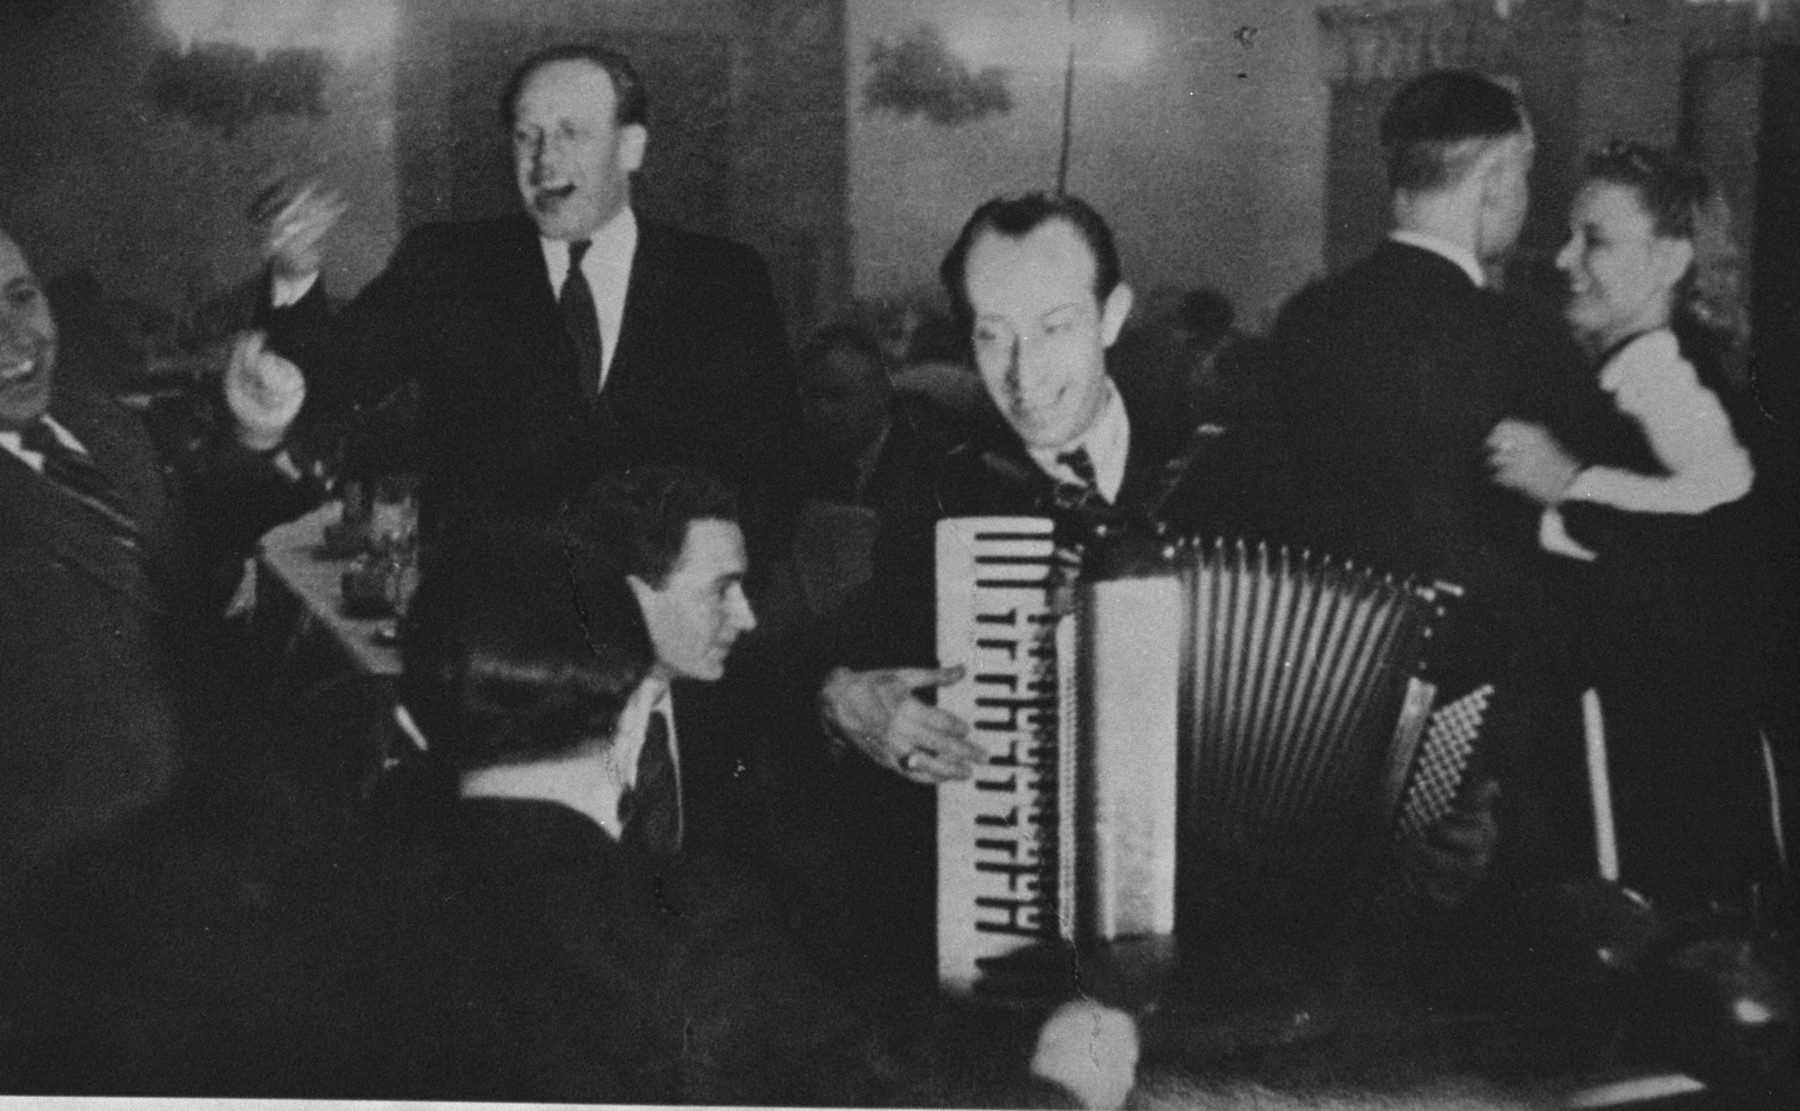 Oskar Schindler at a dinner party in Krakow.  At parties like this, Schindler made contact with various SS and German officials, which often led to tips about impending deportations that enabled him to save his laborers.